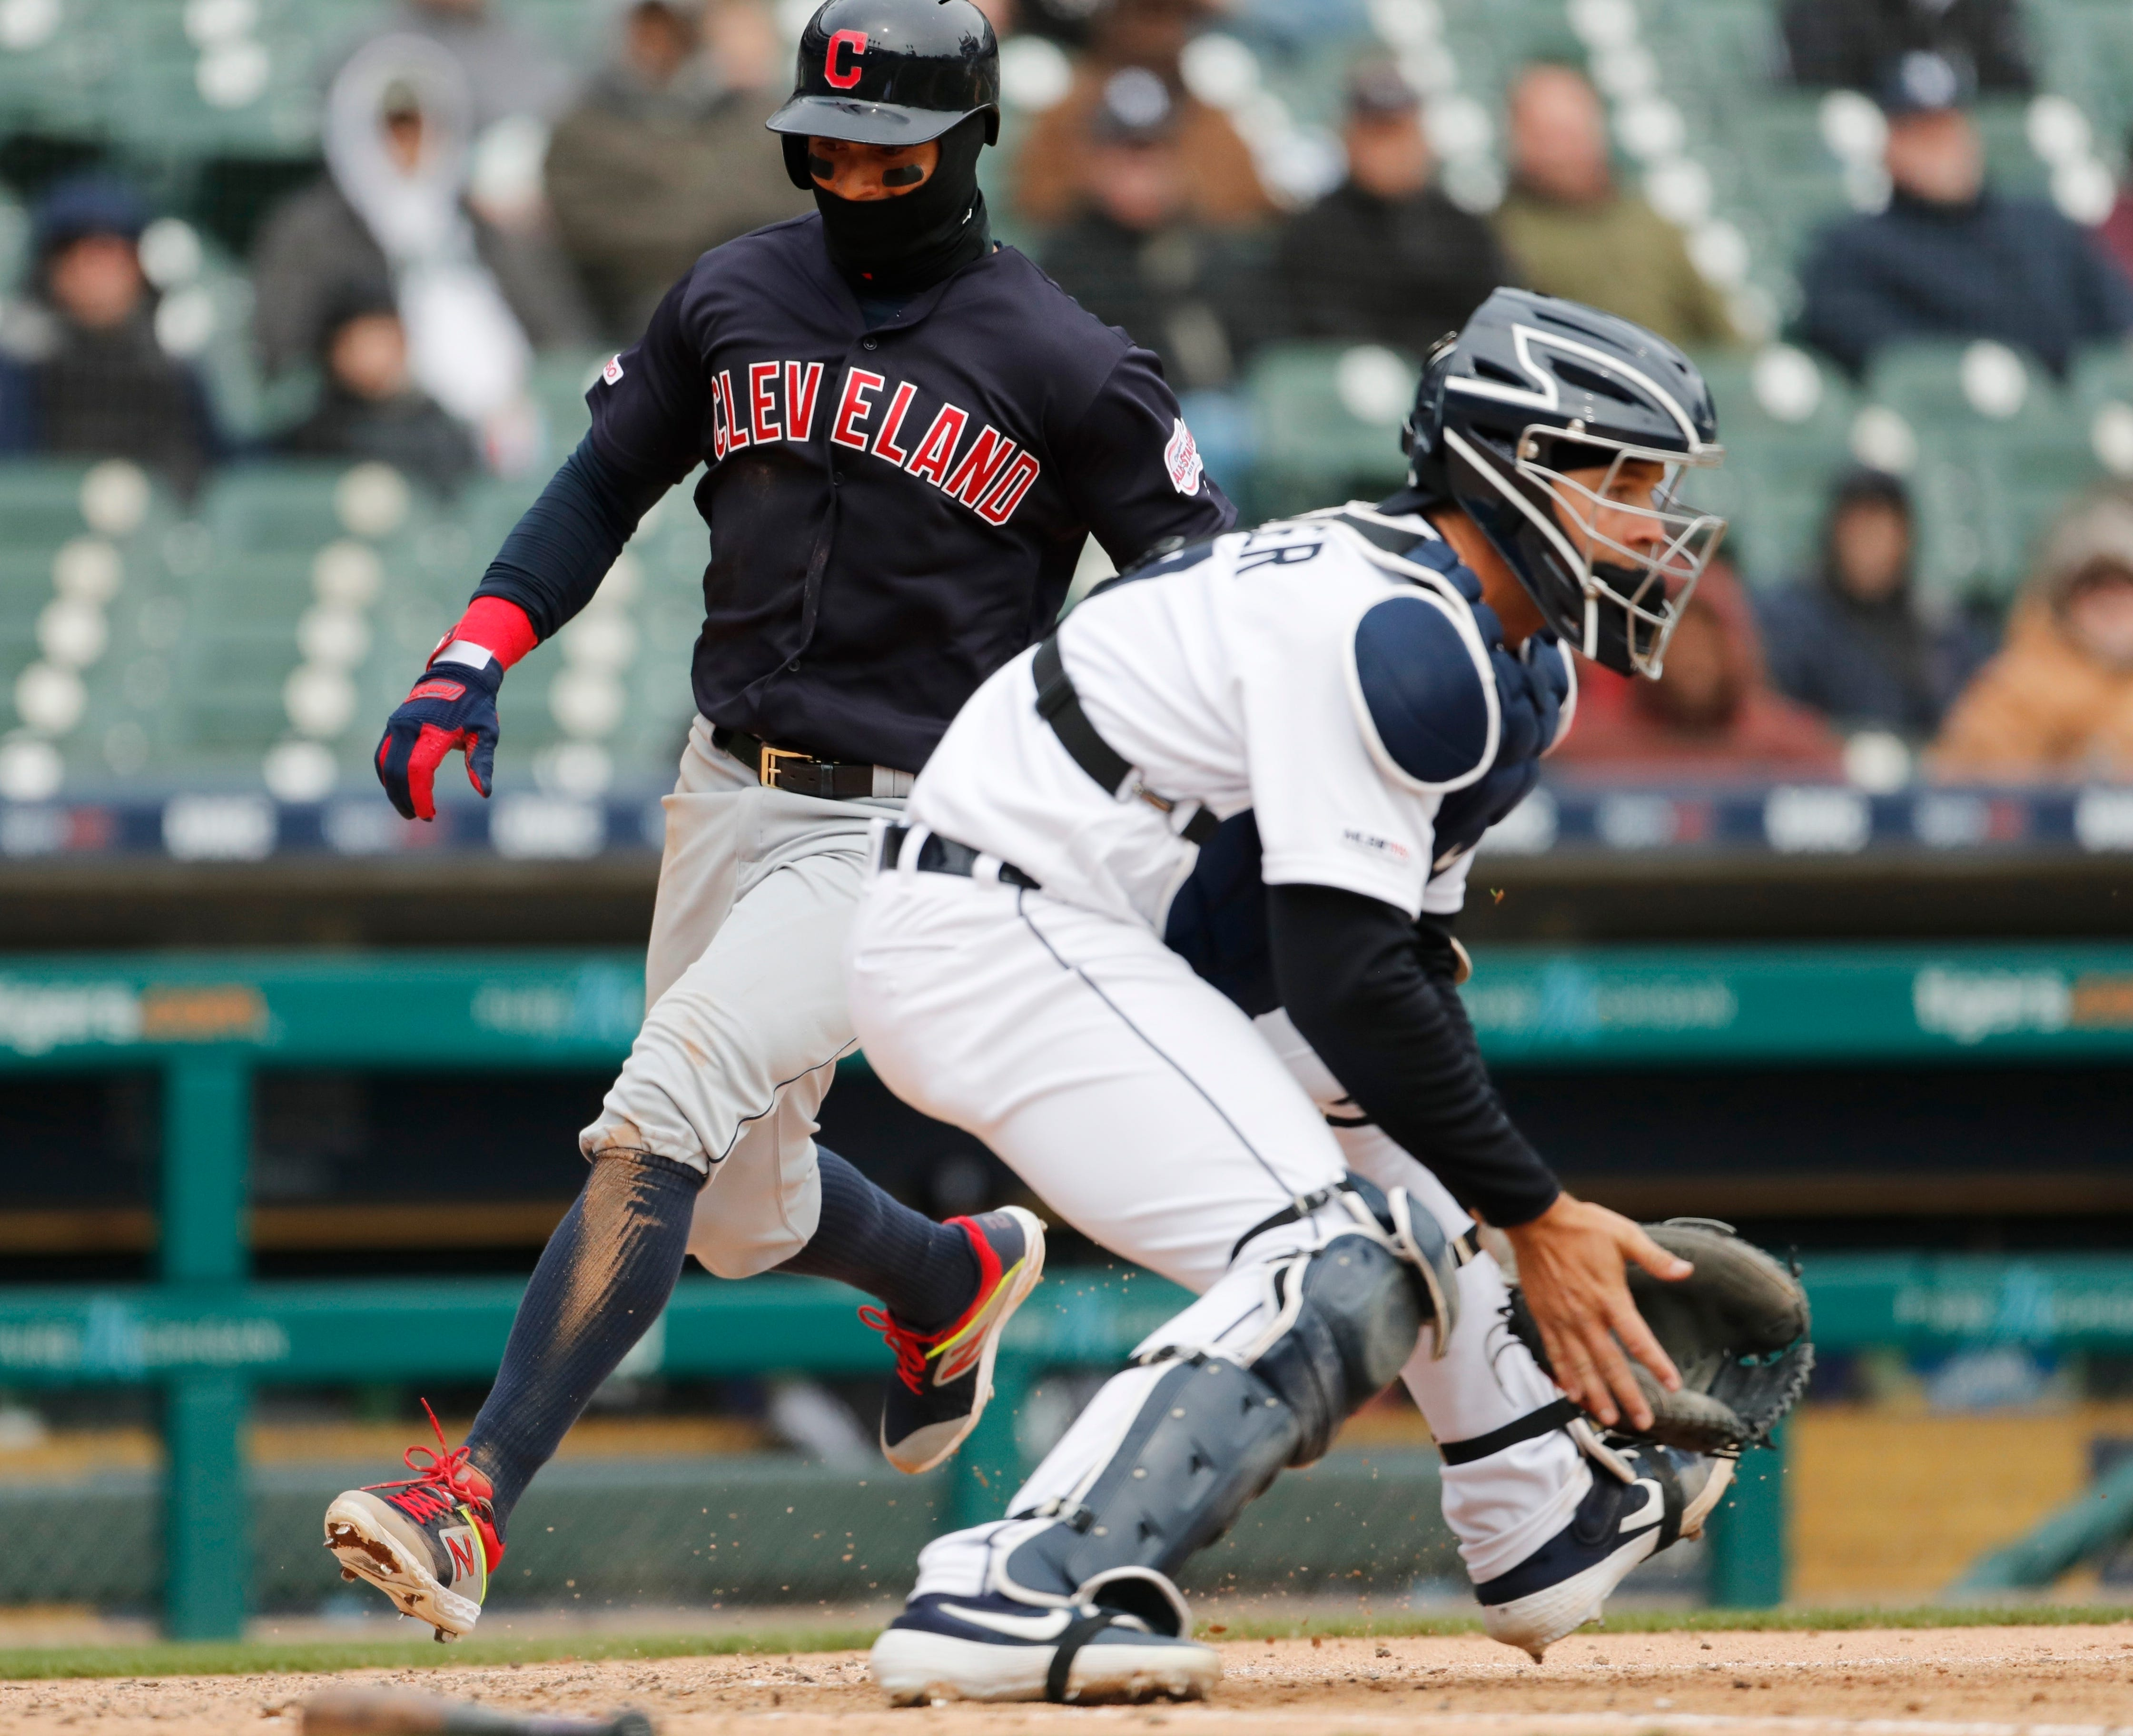 Indians center fielder Leonys Martin beats the throw to Tigers catcher Grayson Greiner to score during the seventh inning of the Tigers' 4-0 loss on Thursday, April 11, 2019, at Comerica Park.